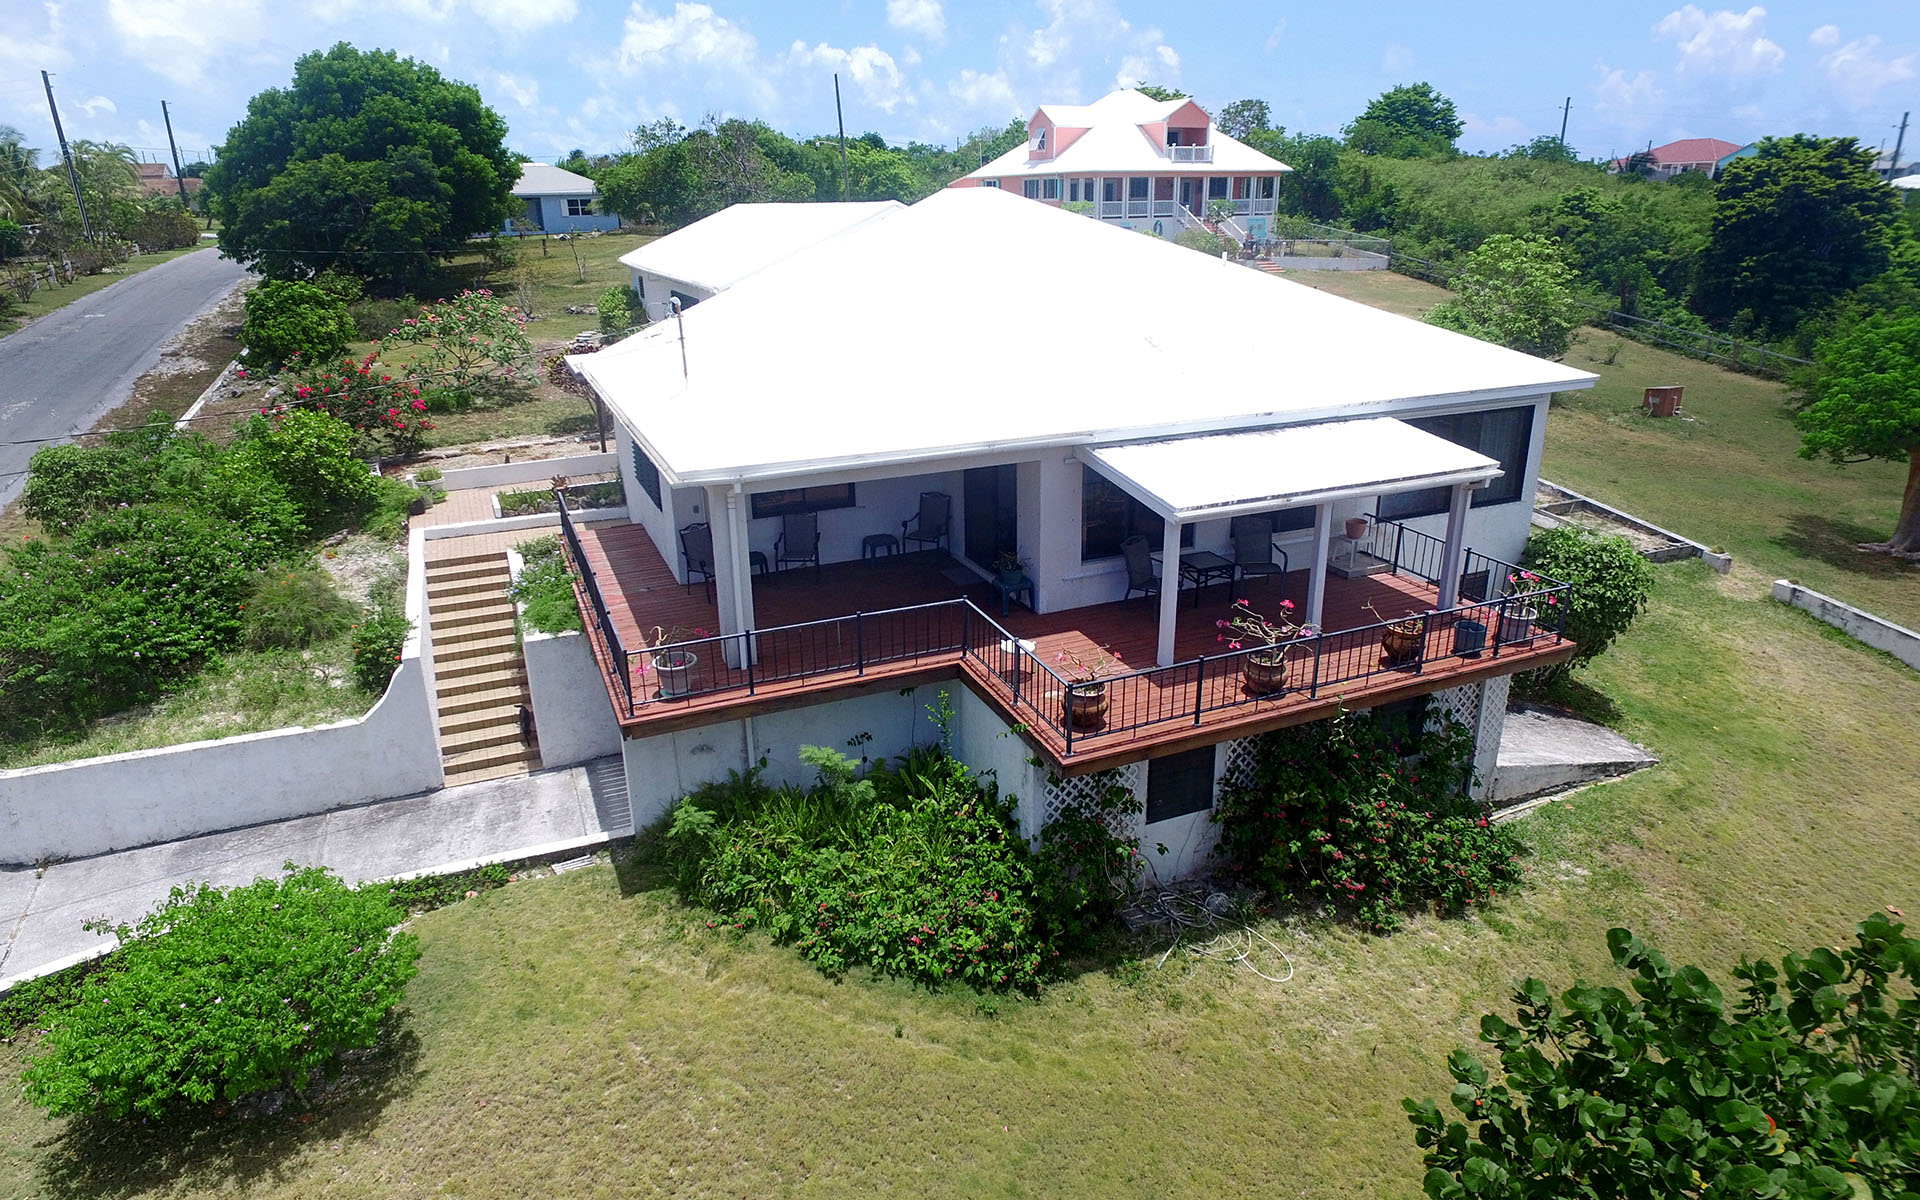 Single Family Home for Sale at Russell Island Home With Sea View and Beach Access Russell Island, Eleuthera, Bahamas